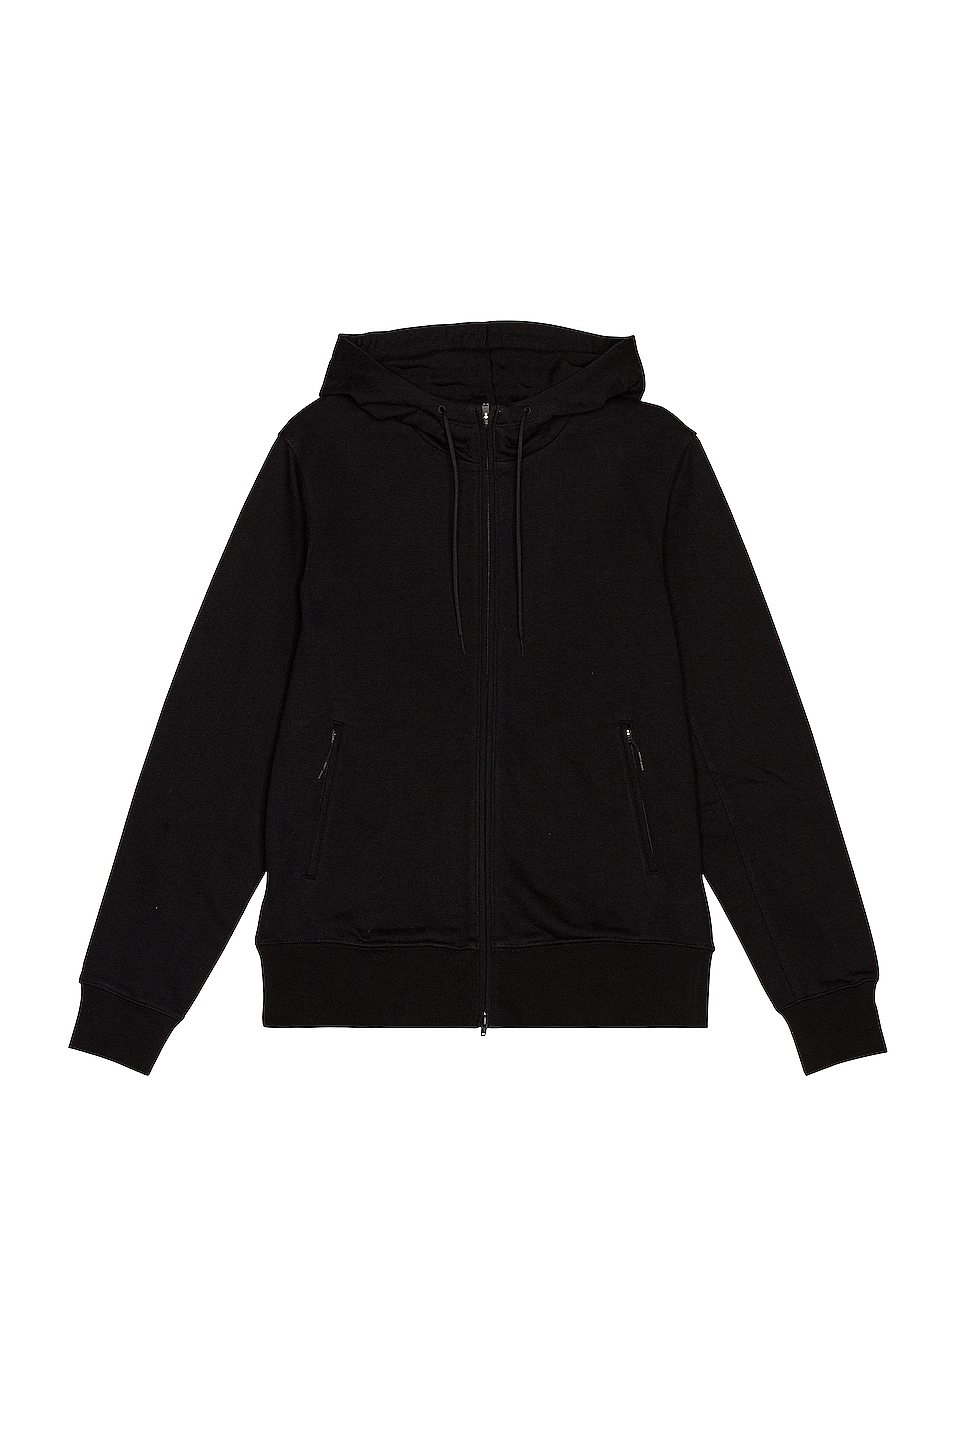 Image 1 of Y-3 Yohji Yamamoto Back Logo Full Zip Hoodie in Black